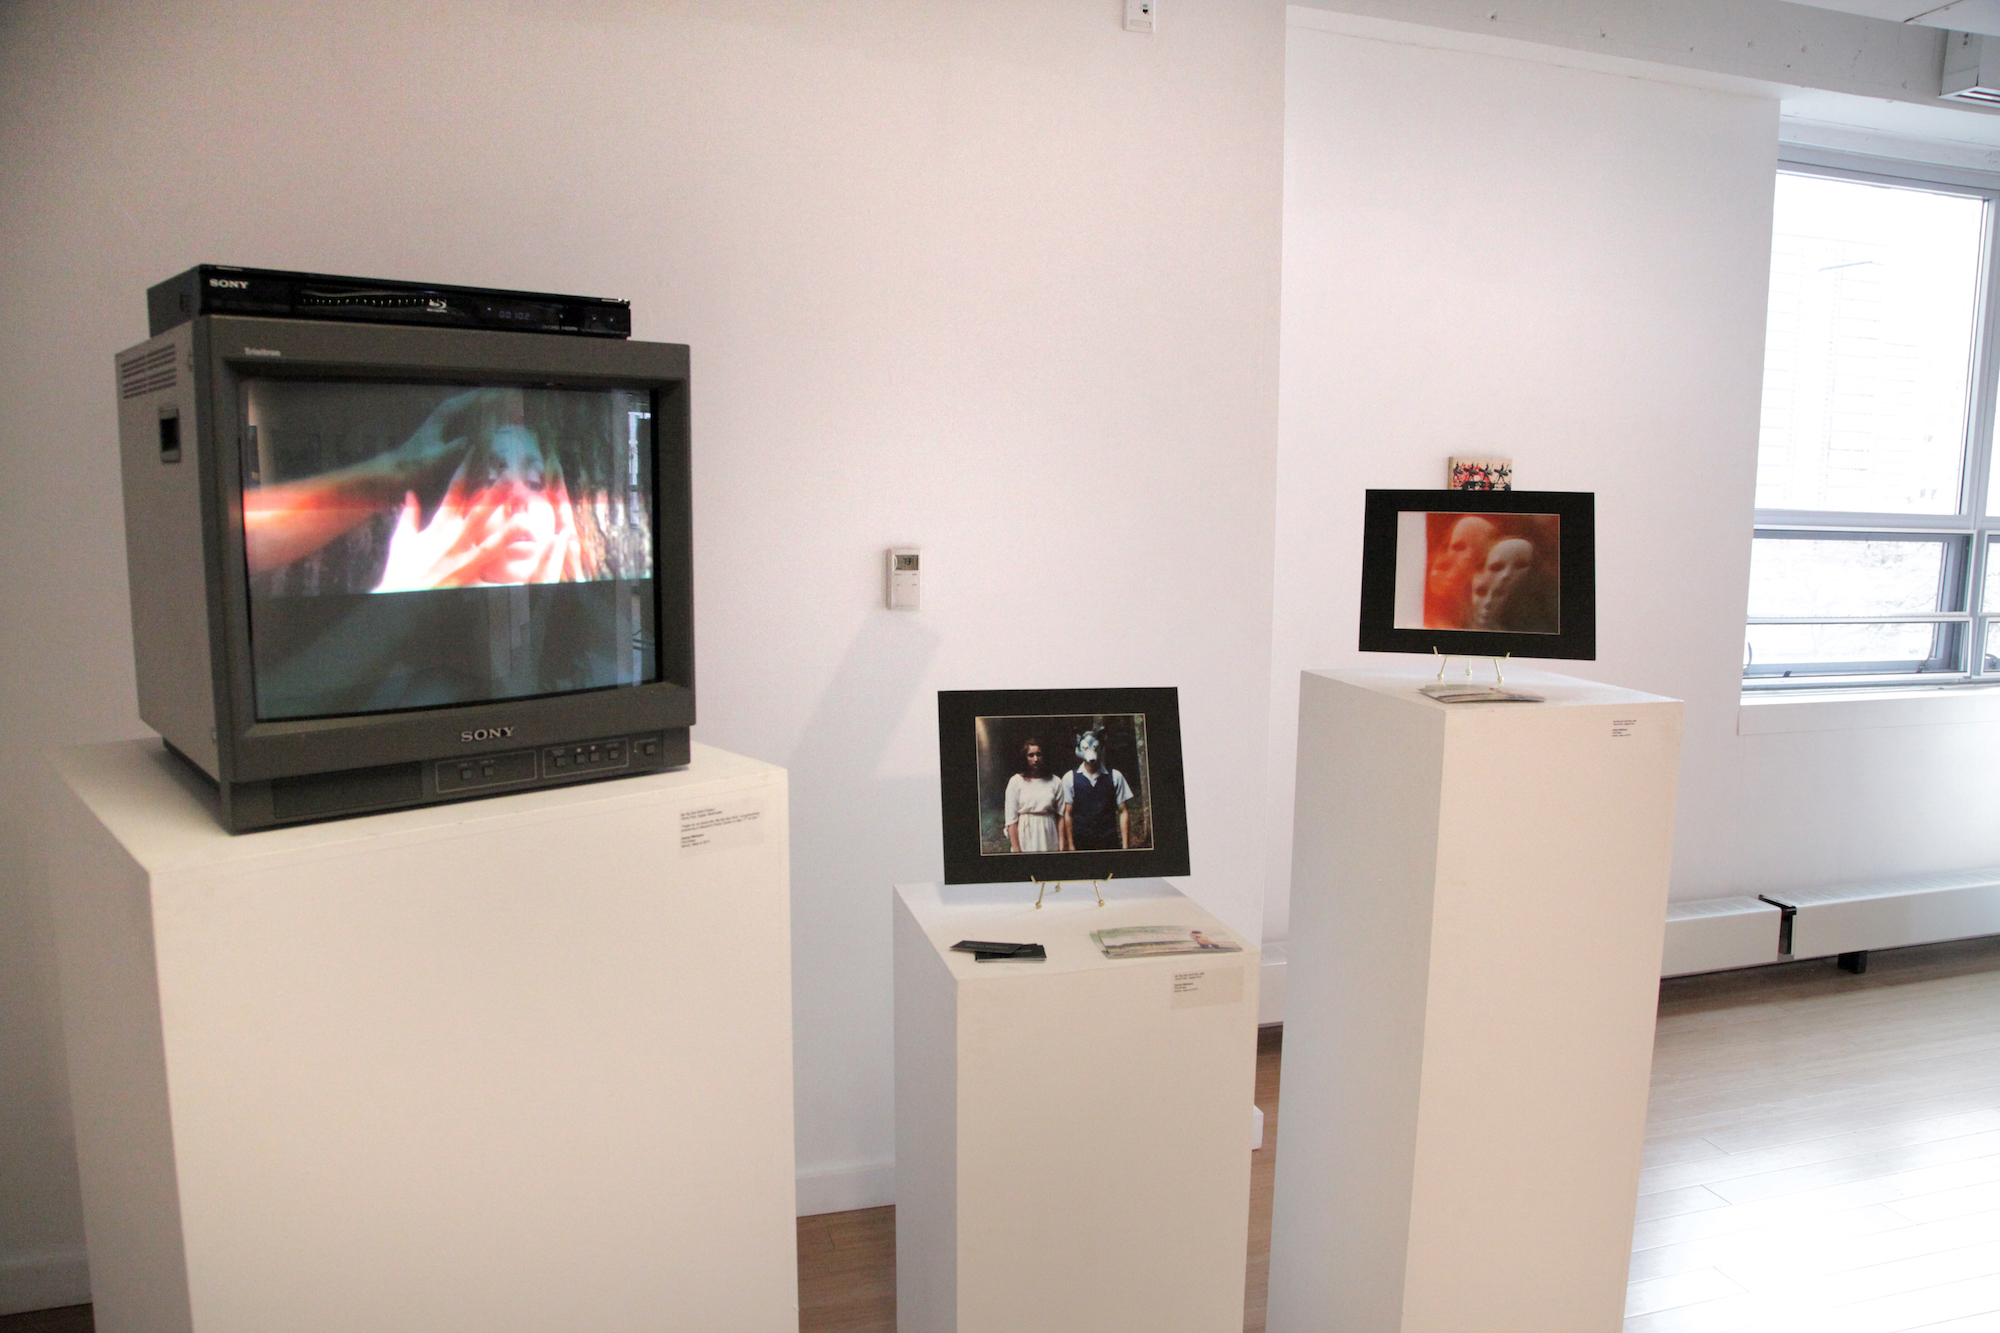 Featured TV with loop of Geena Matuson's trailer for 'My Big Bad Wolf.' / Geena Matuson's (@geenamatuson) TransFIREmation Gallery Show & Installation in the MassArt Student Life Gallery in Boston, MA, US.